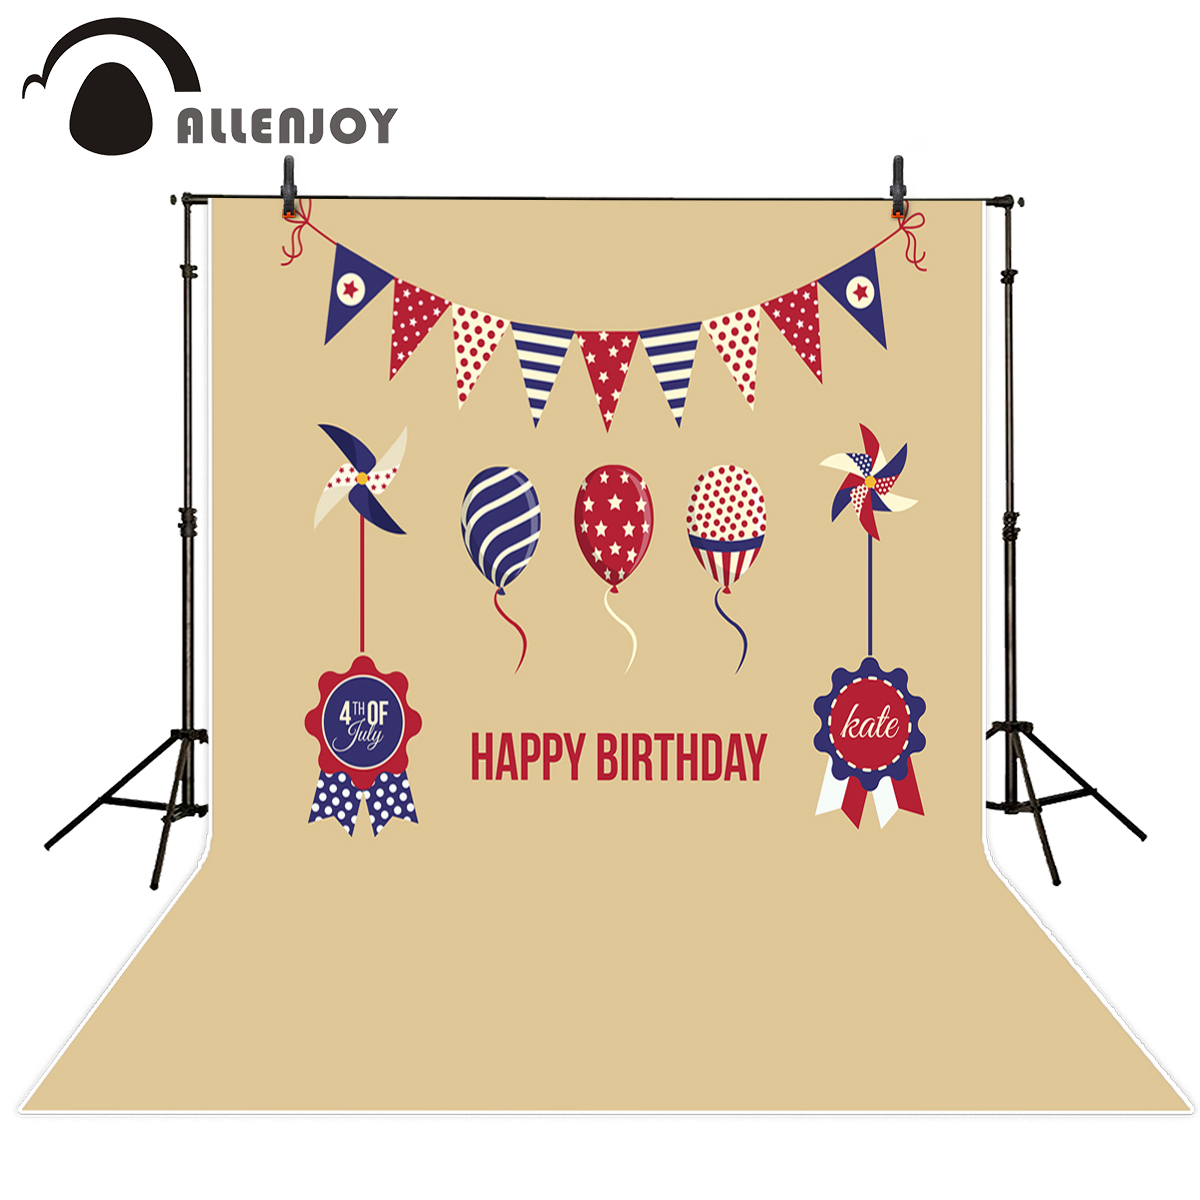 Allenjoy photography backdrop happy birthday stars flags celebrate backgrounds for photo studio for a photo shoot sweet berry go and celebrate happy team